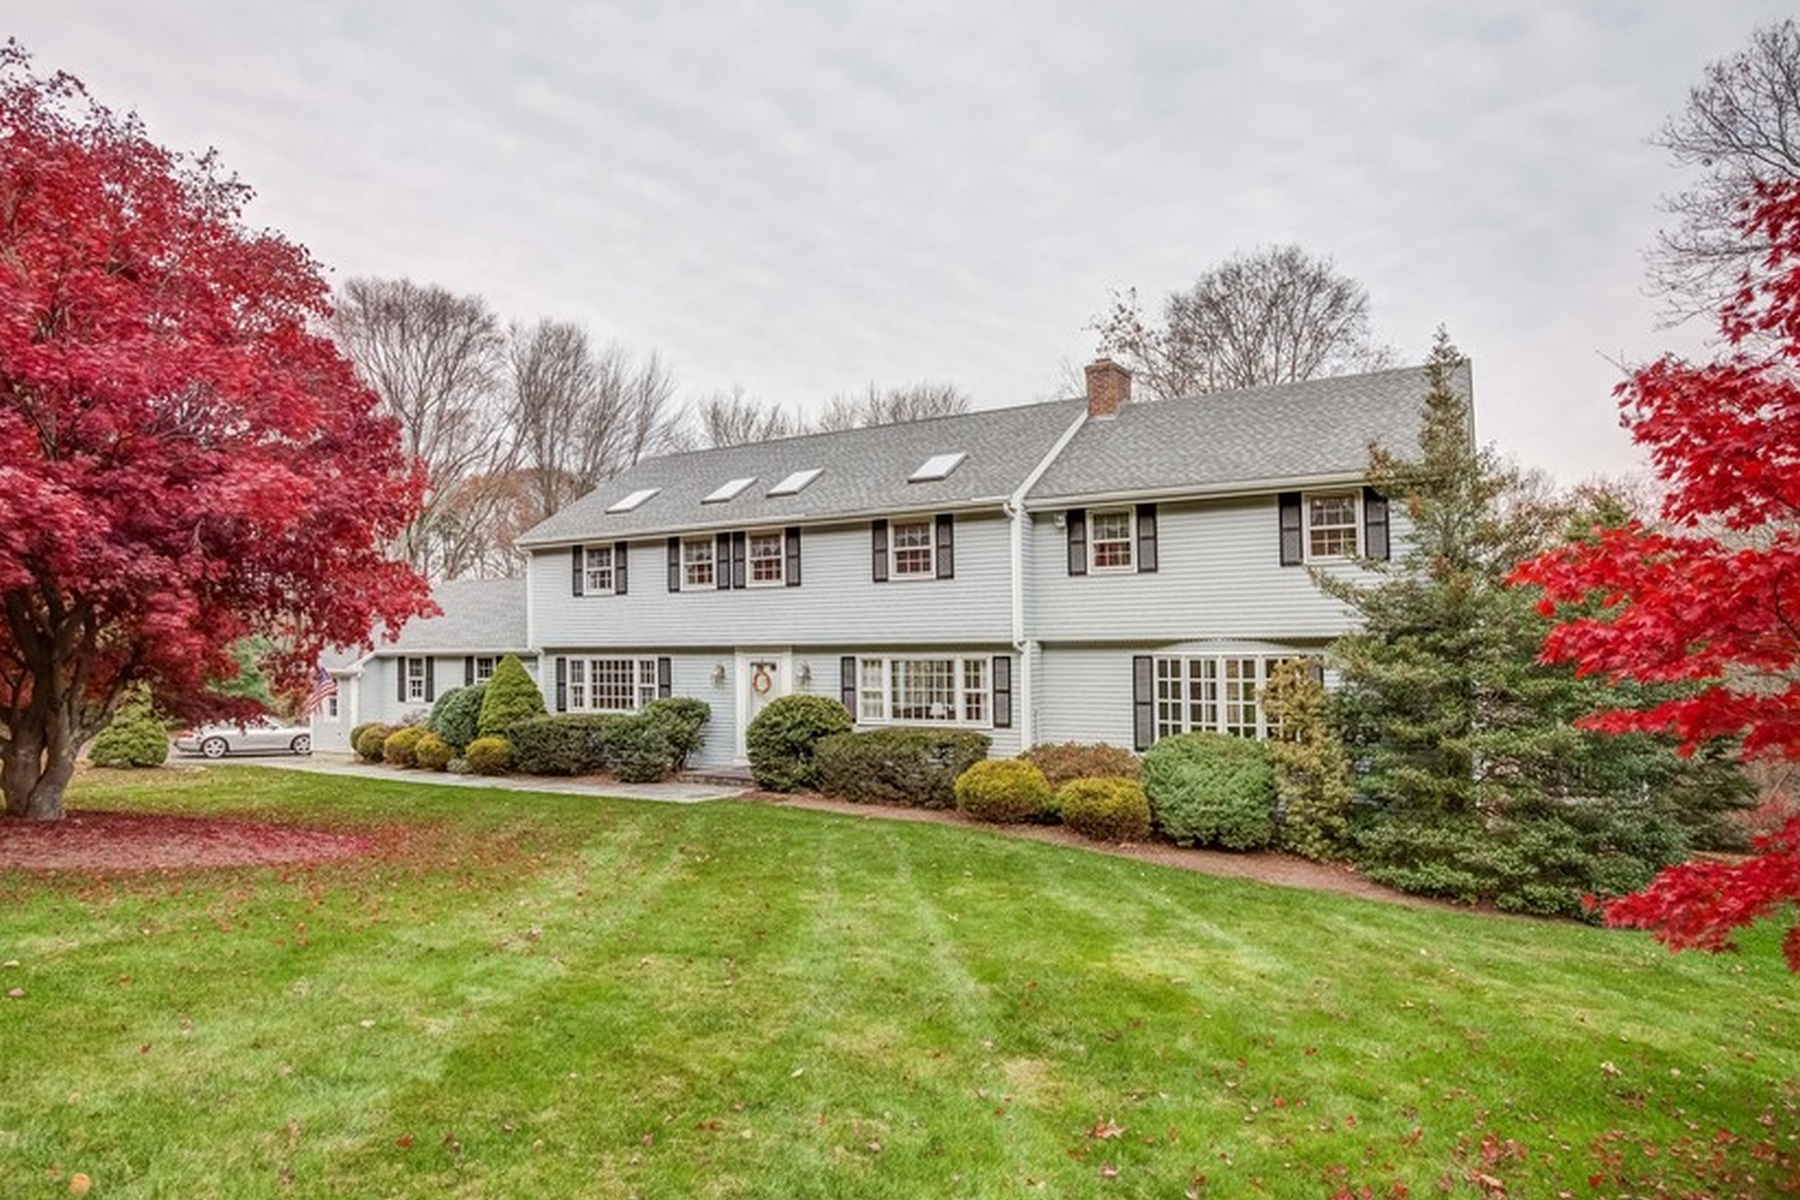 Single Family Home for Sale at Cul-de-Sac Location 37 Whiting Farm Road Branford, Connecticut 06405 United States